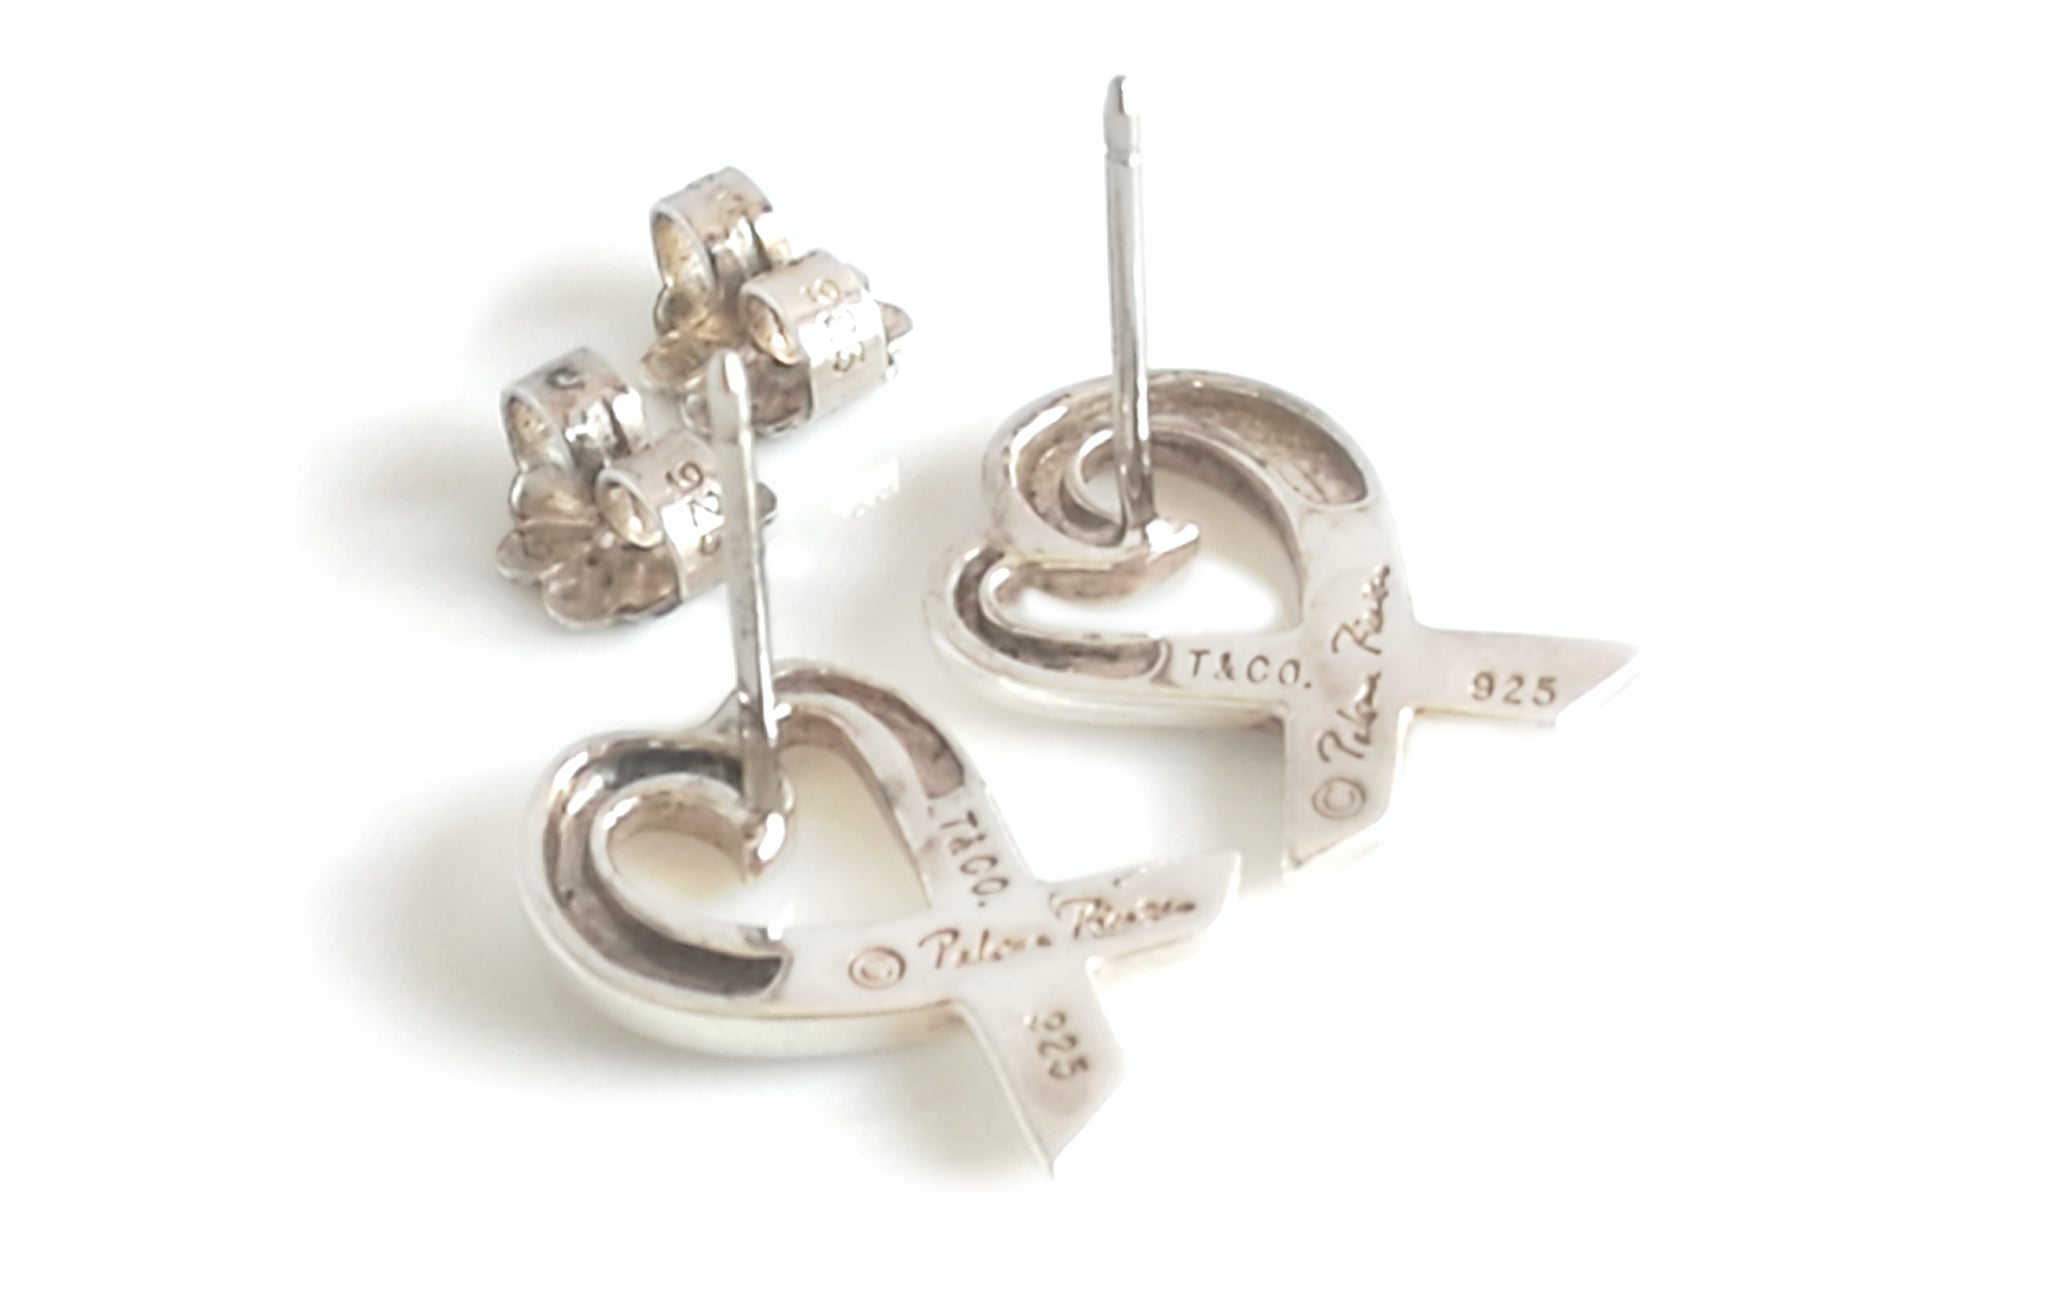 bfc66234f Tiffany & Co. Paloma Picasso Sterling Silver Loving Heart Earrings ...